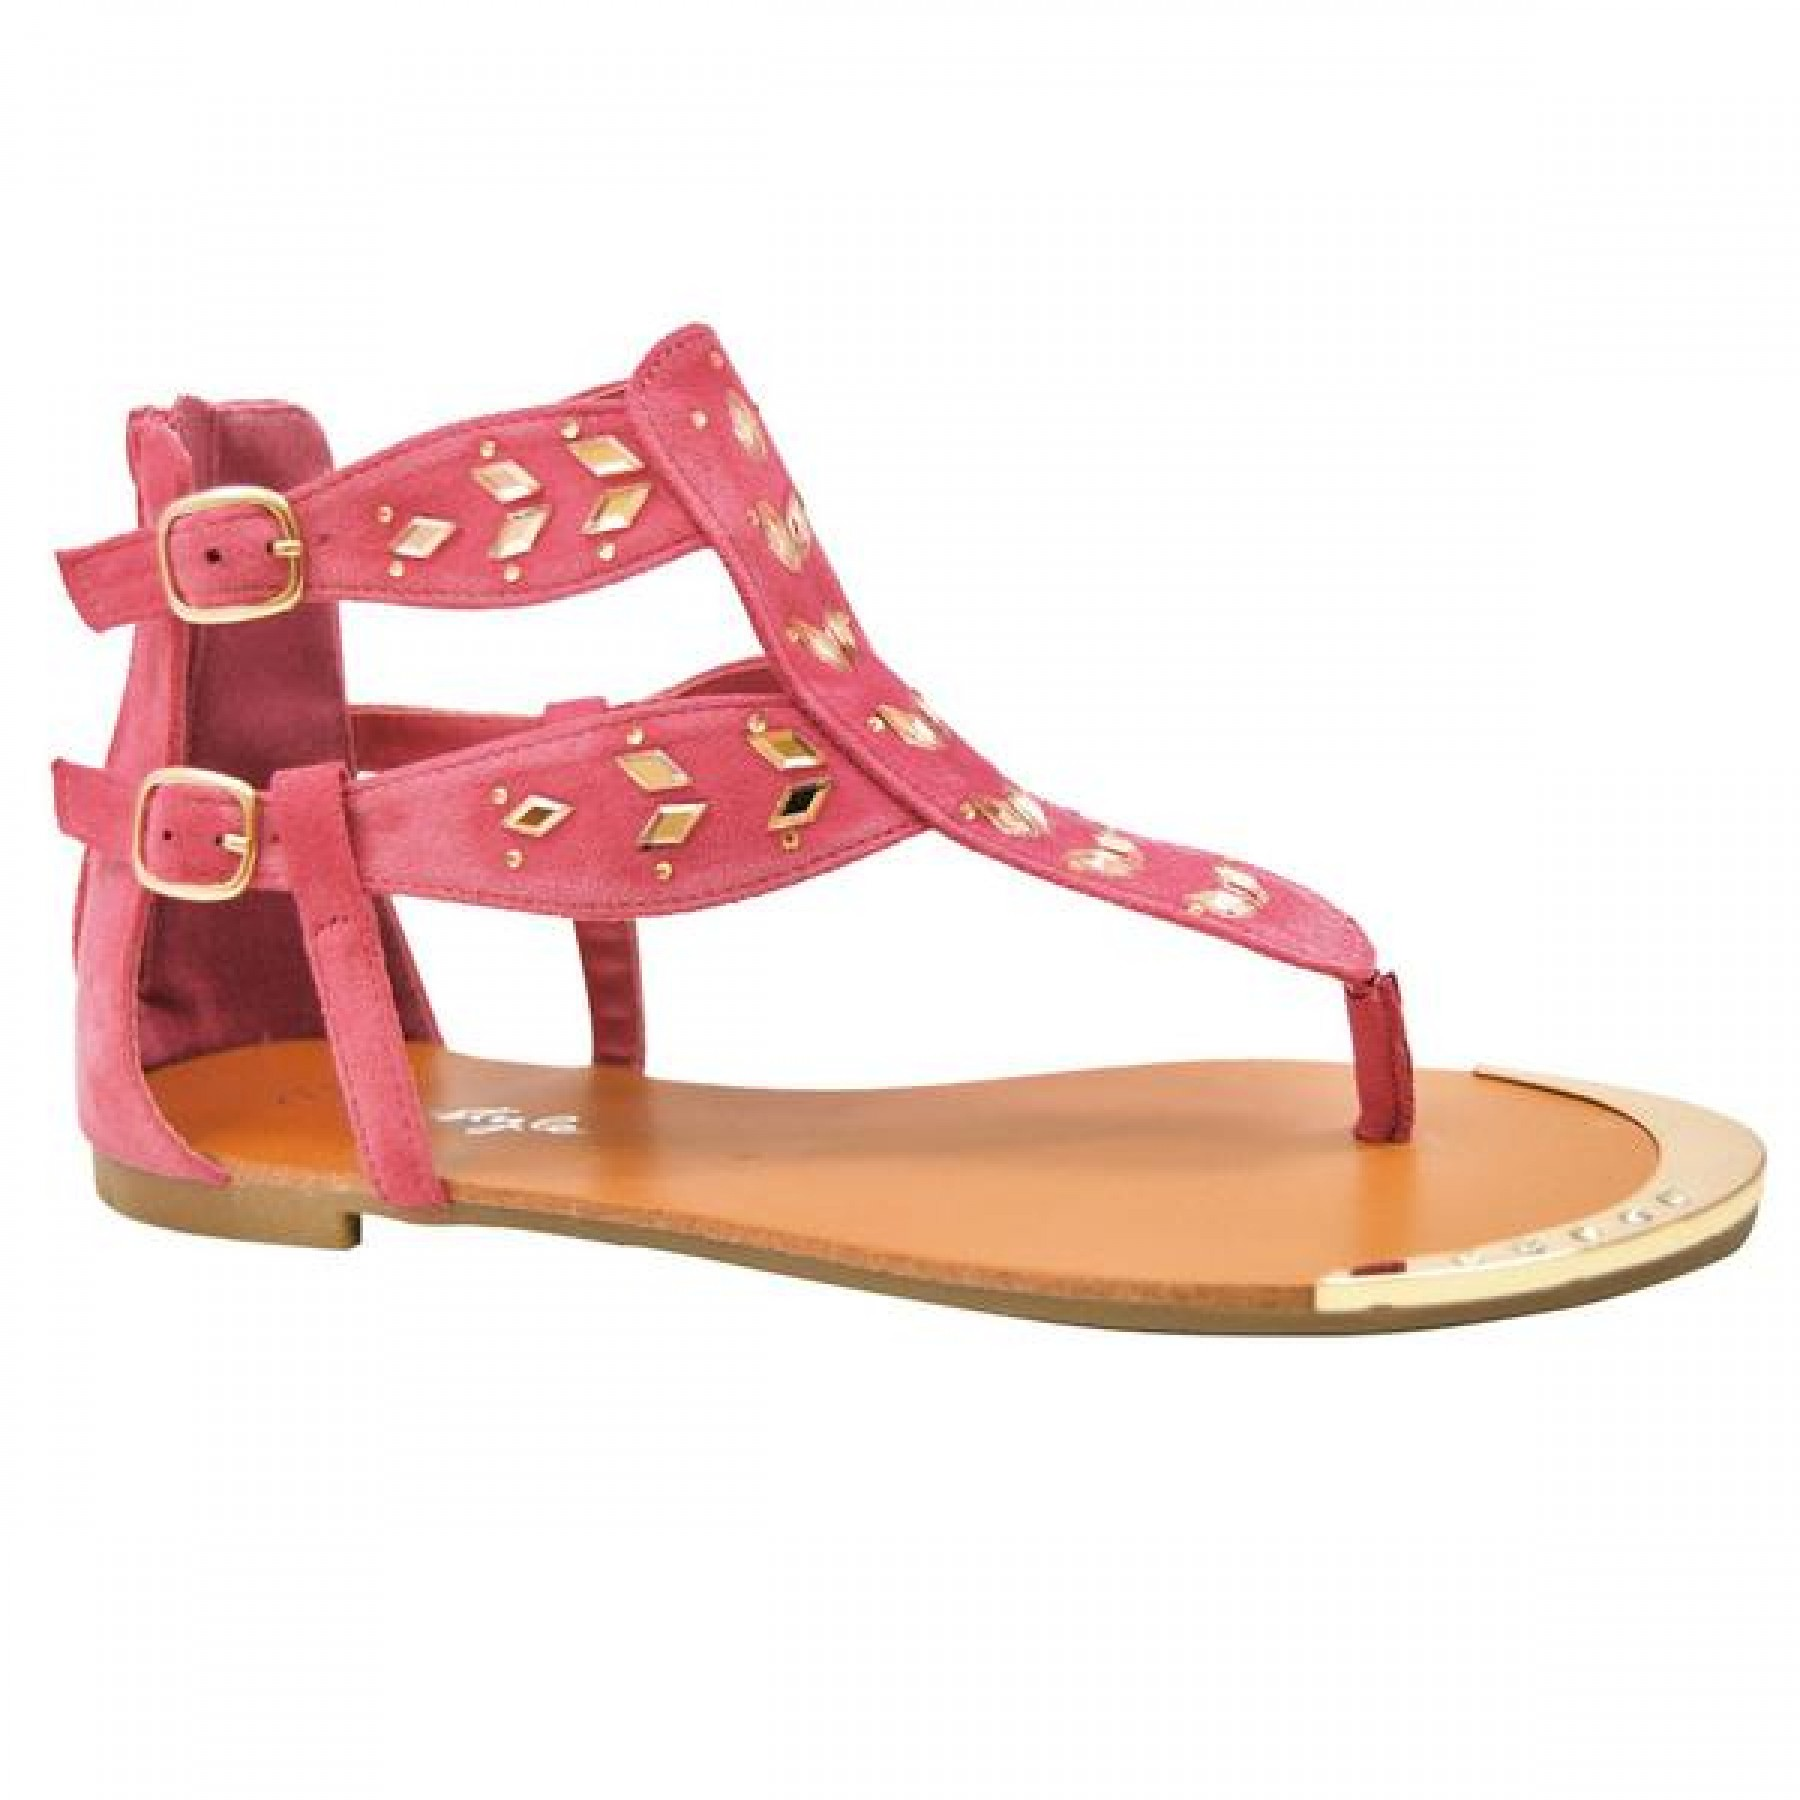 Women's Fuchsia Wyylee T-Strap Sandal with Shining Gold-Tone Accents